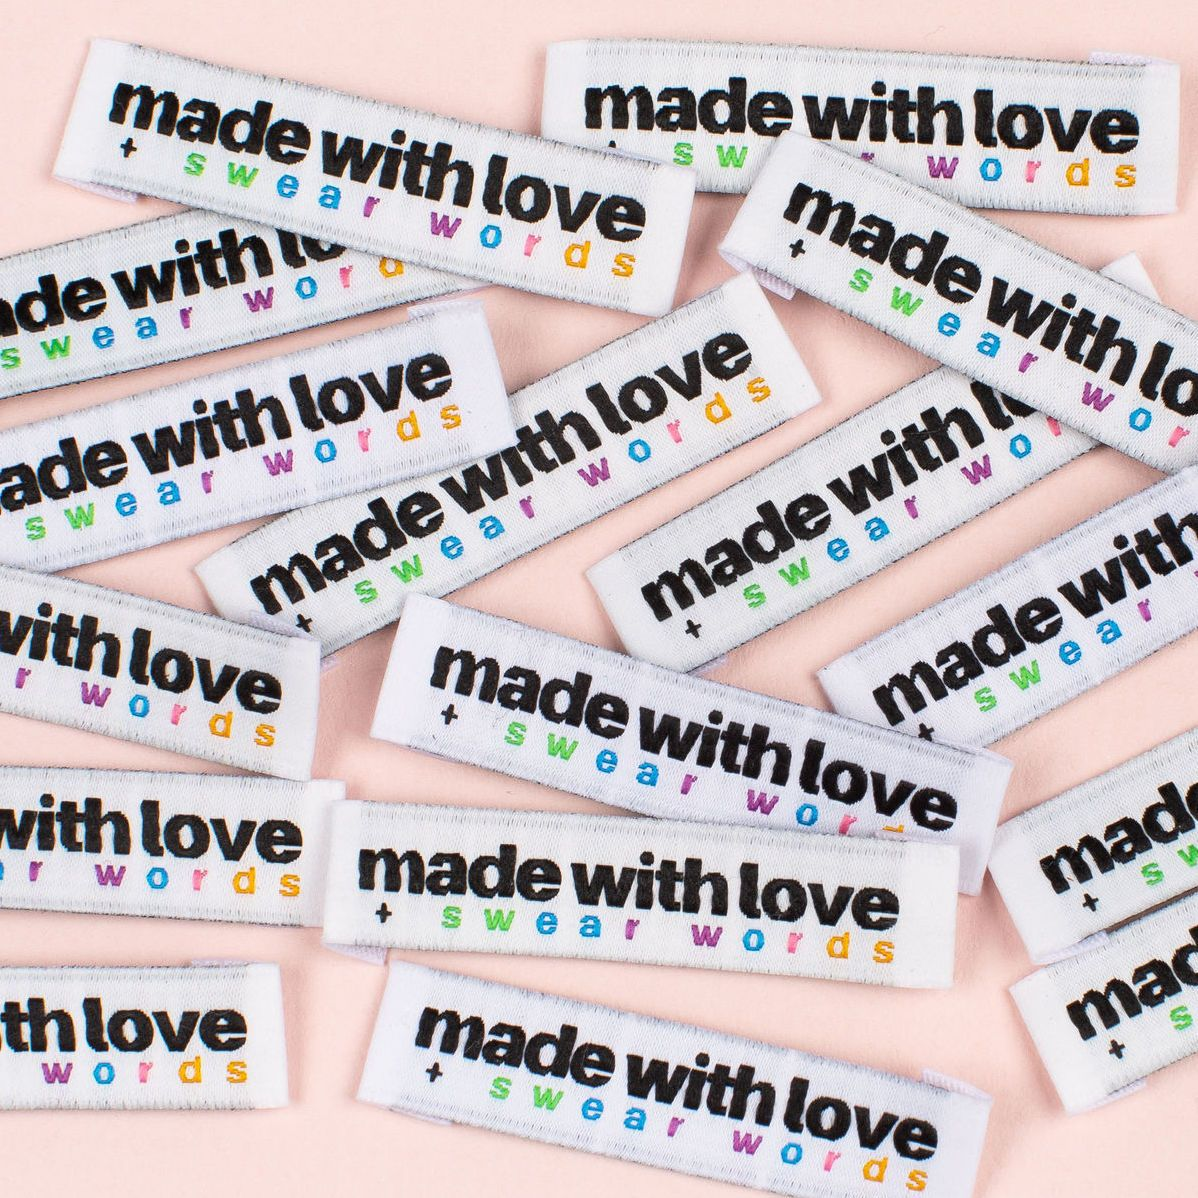 Kylie and the Machine Made with Love + Swear Words' - Woven Label -  - Gifts